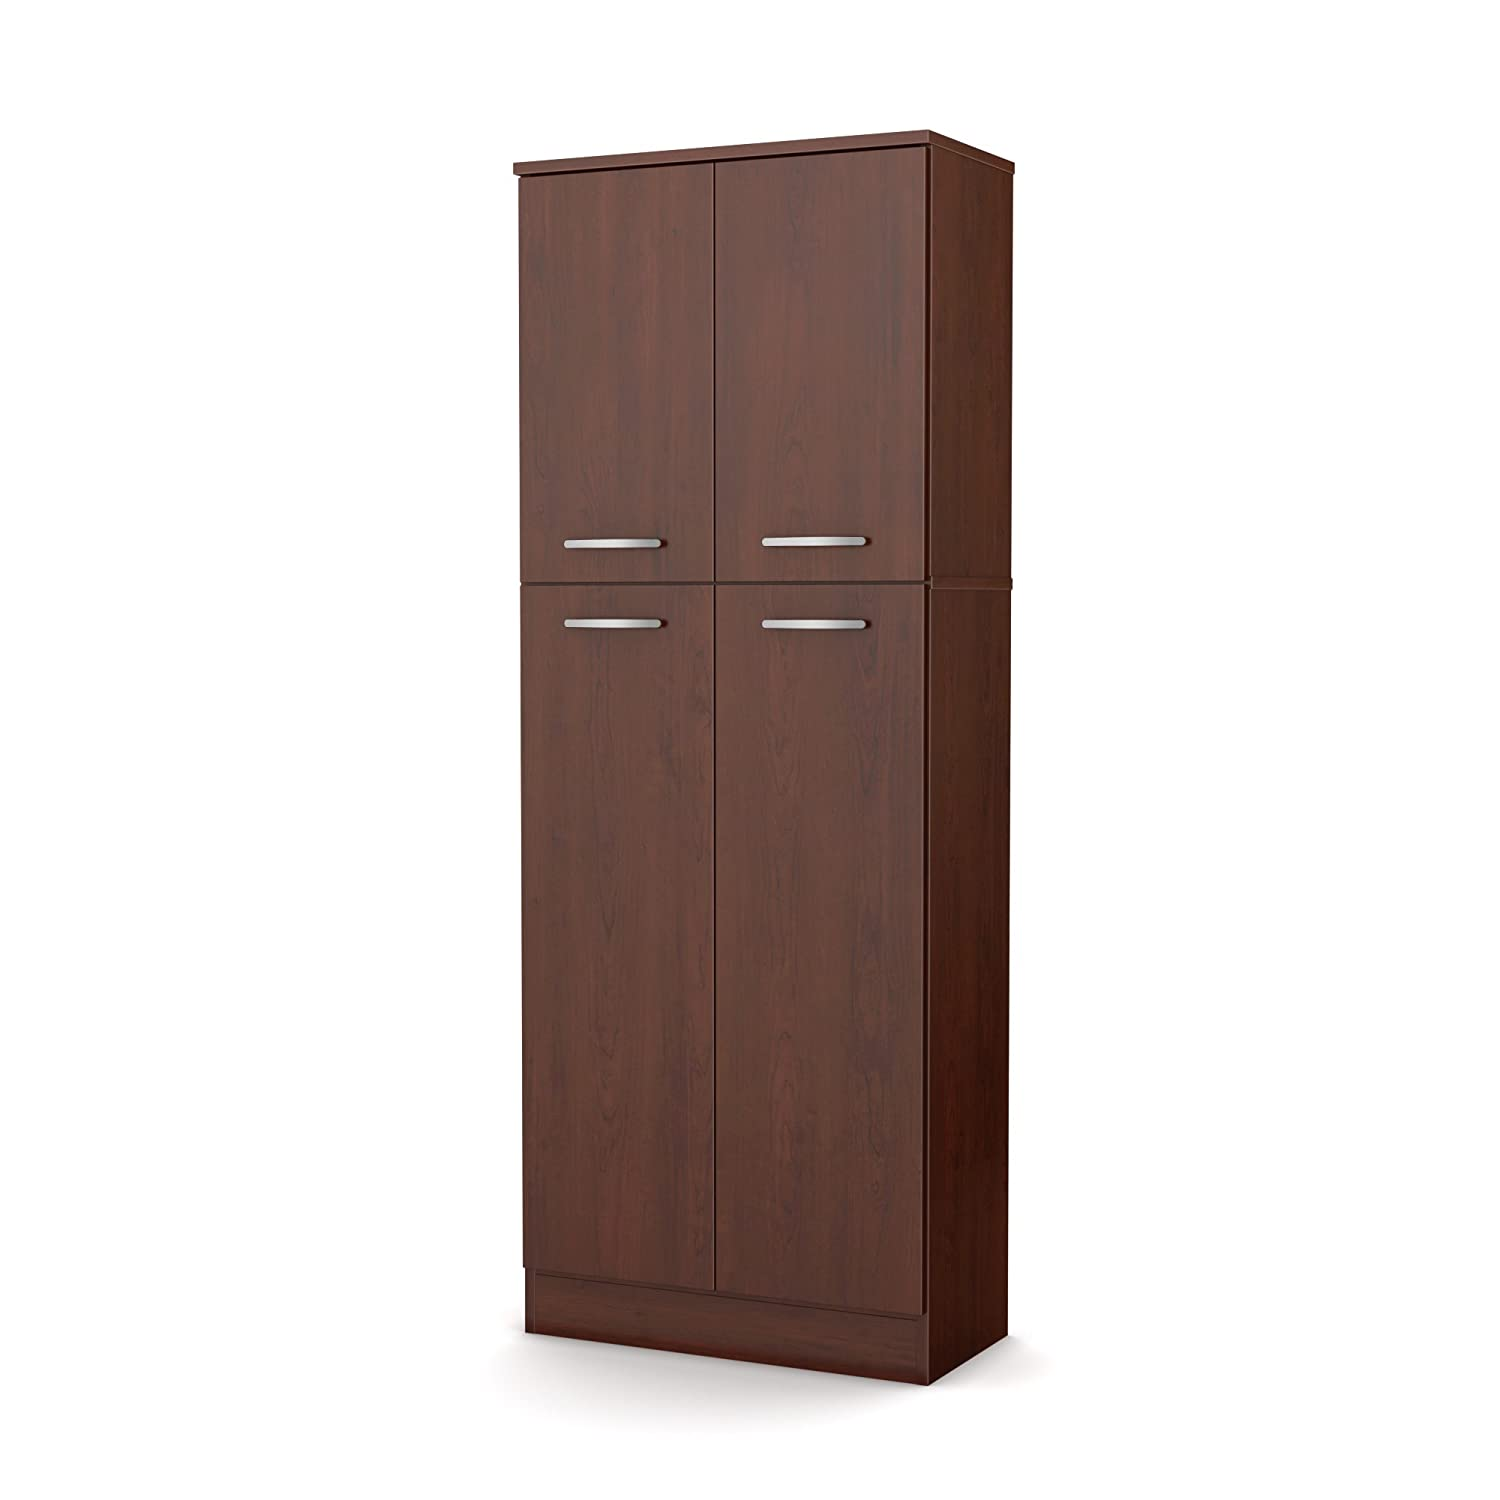 Kitchen Cabinet Pantry Cupboard Brown Organizer Food